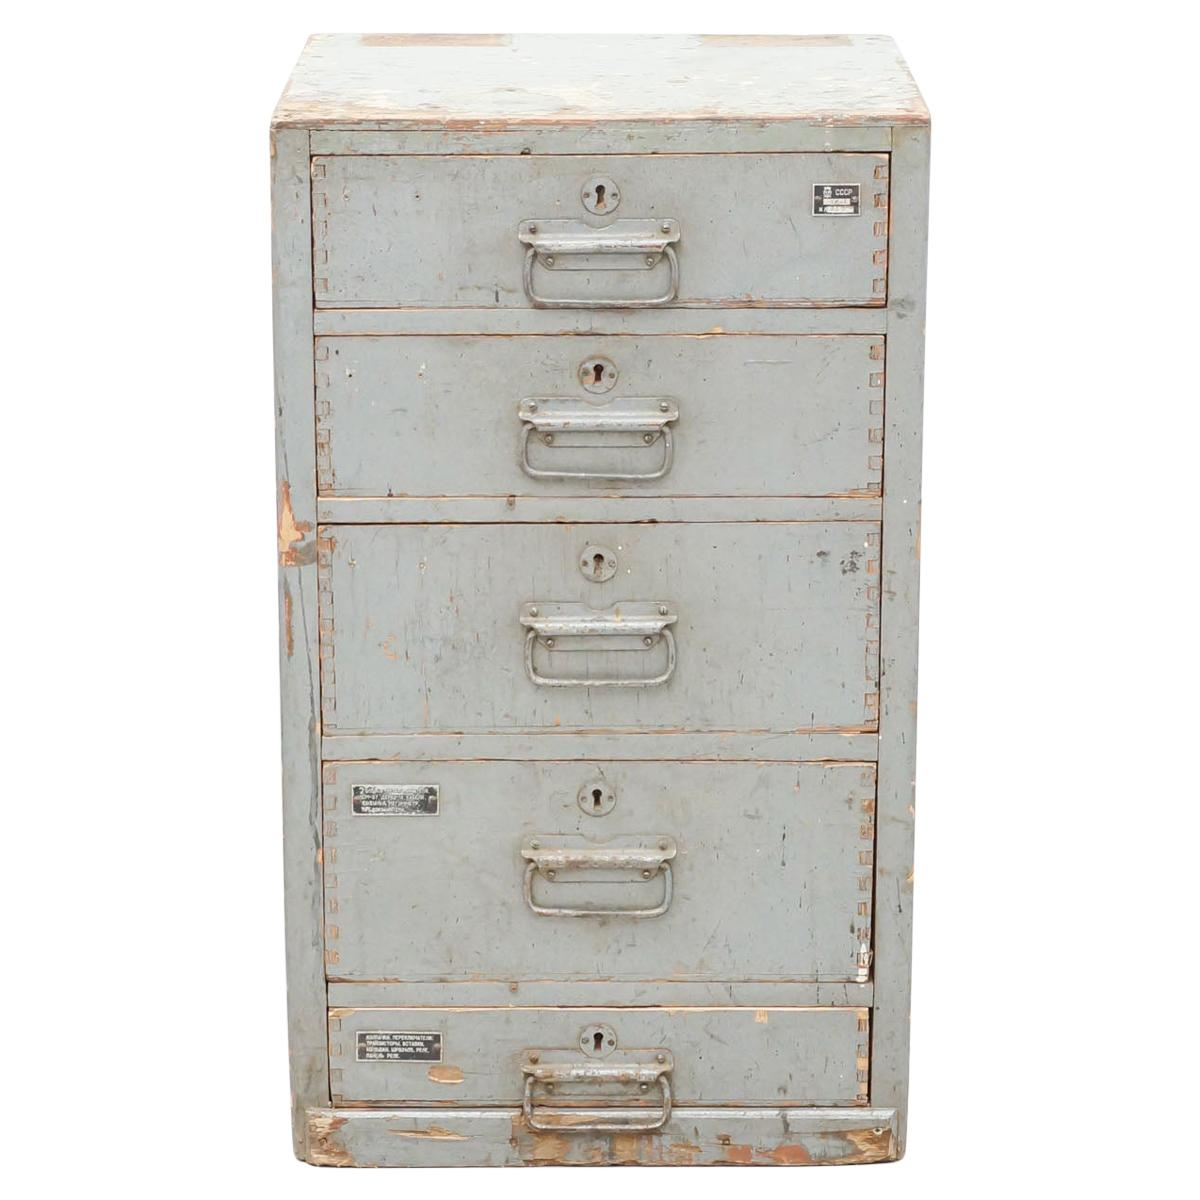 Antique French Filing Cabinet, circa 1940